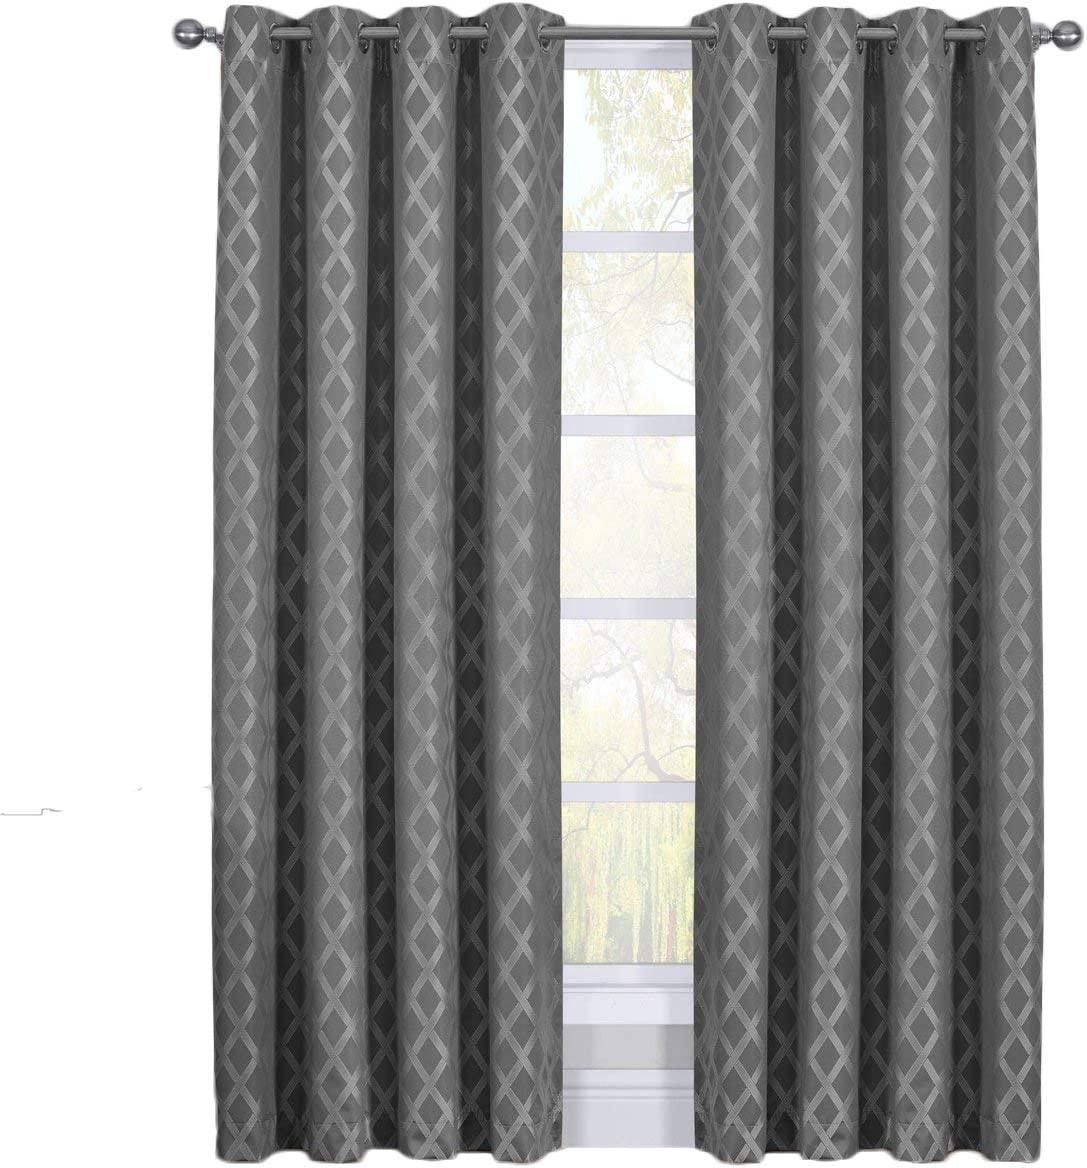 sheetsnthings Rosaline 108-Inch Wide x 108-Inch Long, Set of 2 Jacquard Thermal Insulated Blackout Curtains, Grey